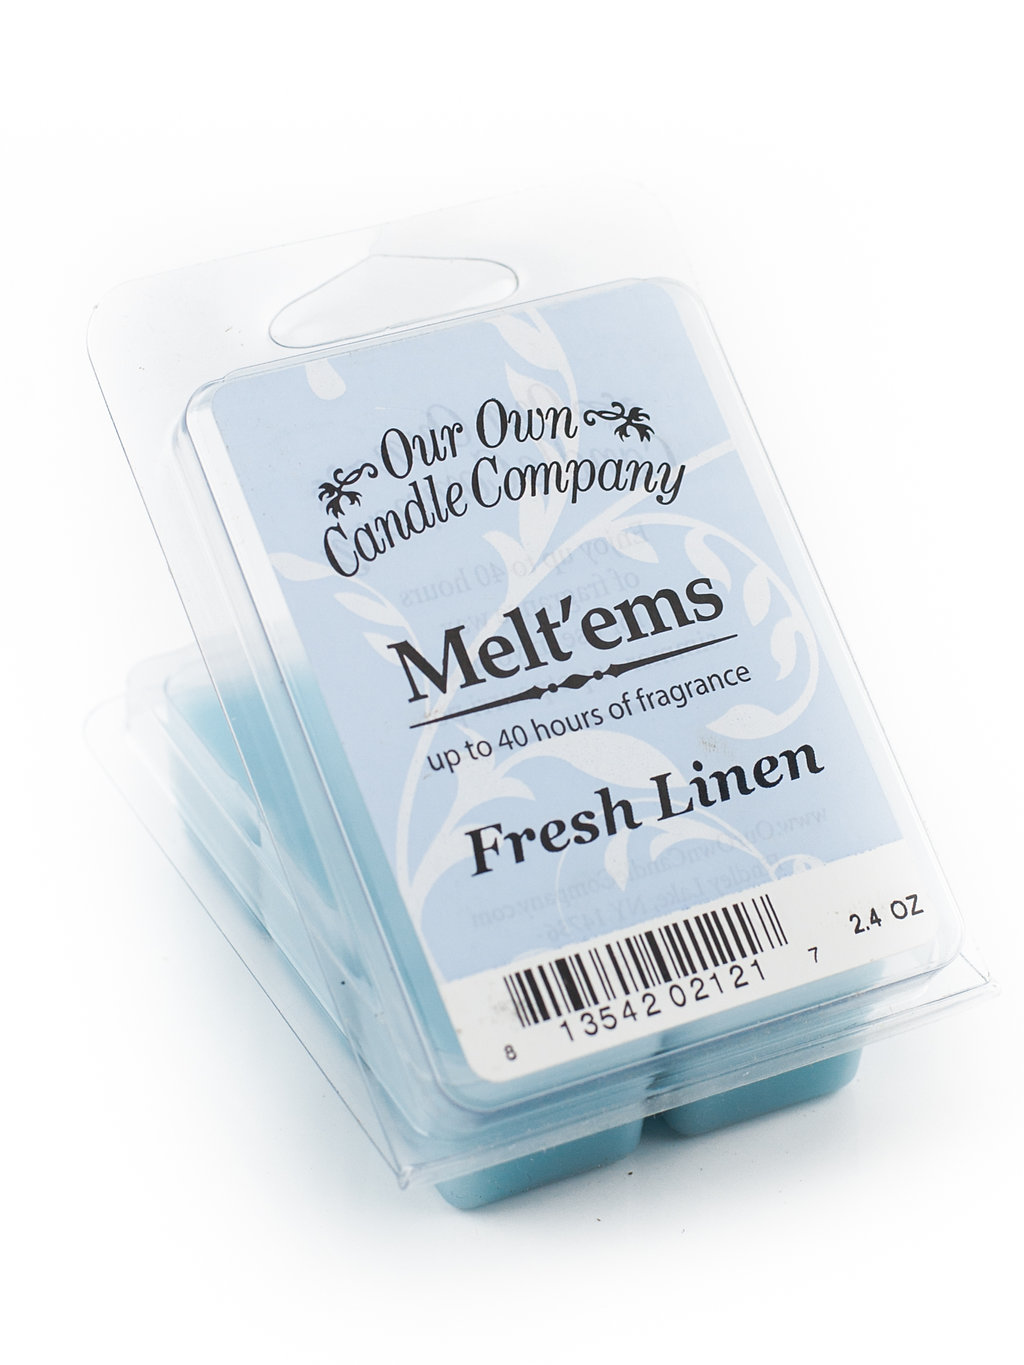 FRESH LINEN MELT 6 CUBE 2.4 OZ UPC# 813542021217